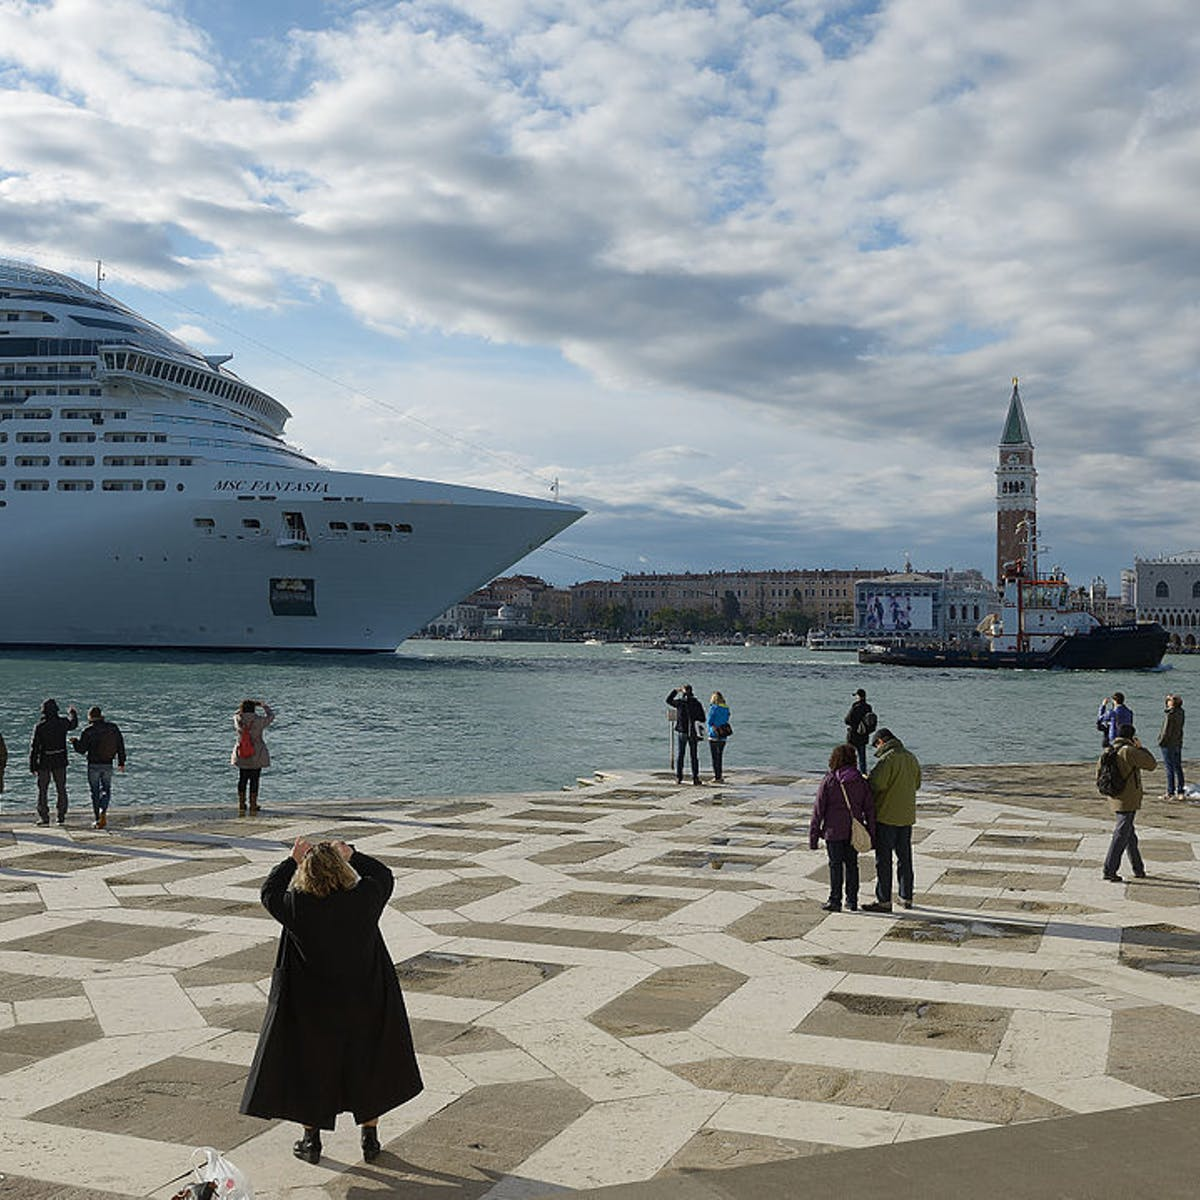 Cruise lines promise big payouts, but the tourist money